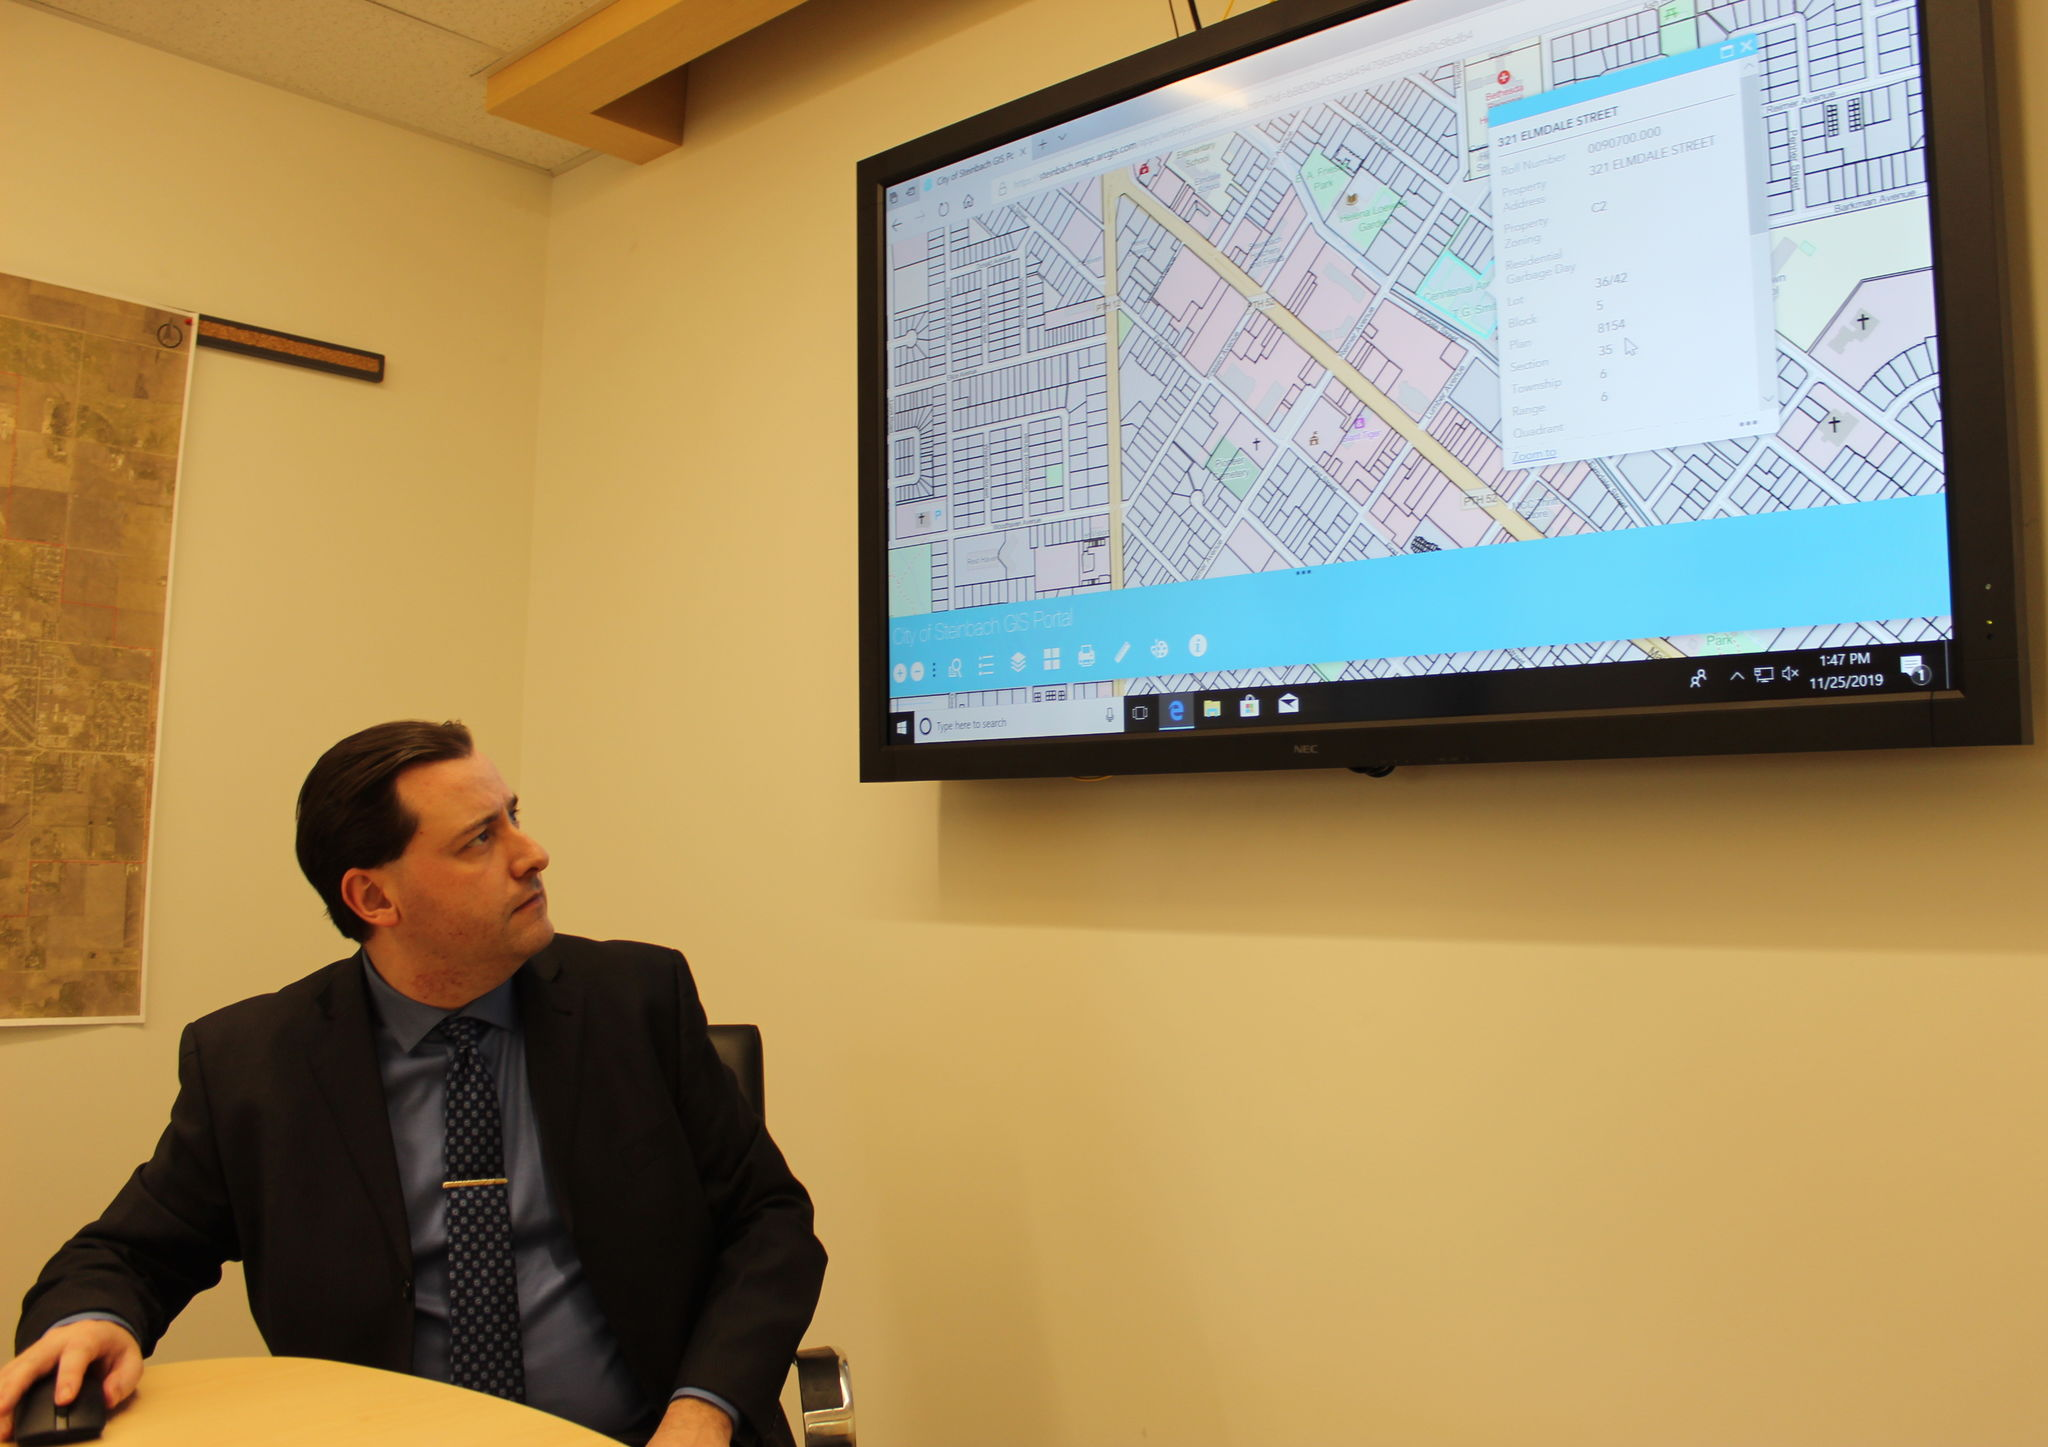 Mitchell Eastley, the City of Steinbach's GIS technician, demonstrates the mapping software on a conference room smartboard at city hall.